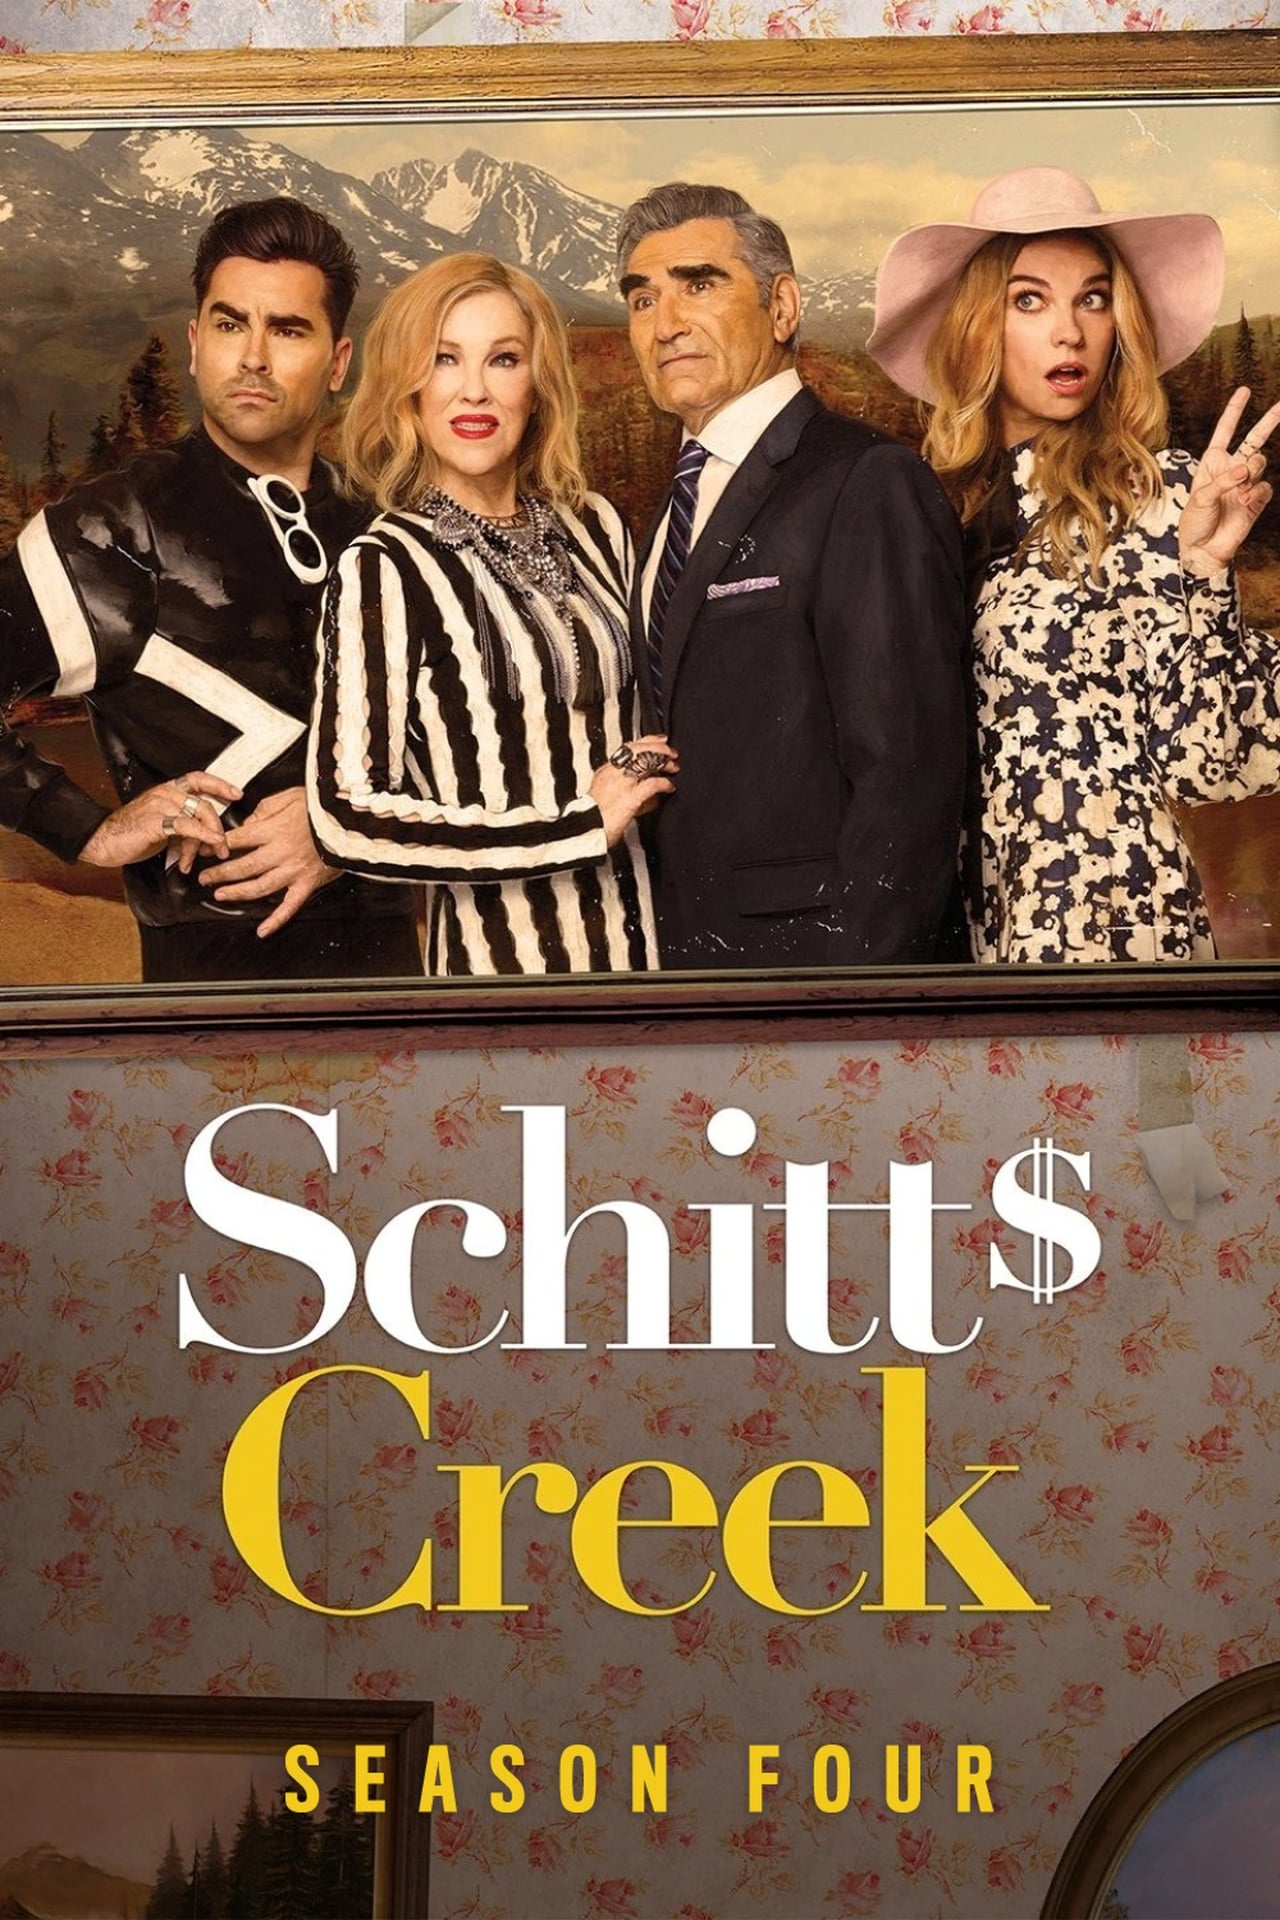 Watch Schitt's Creek Season 4 Online